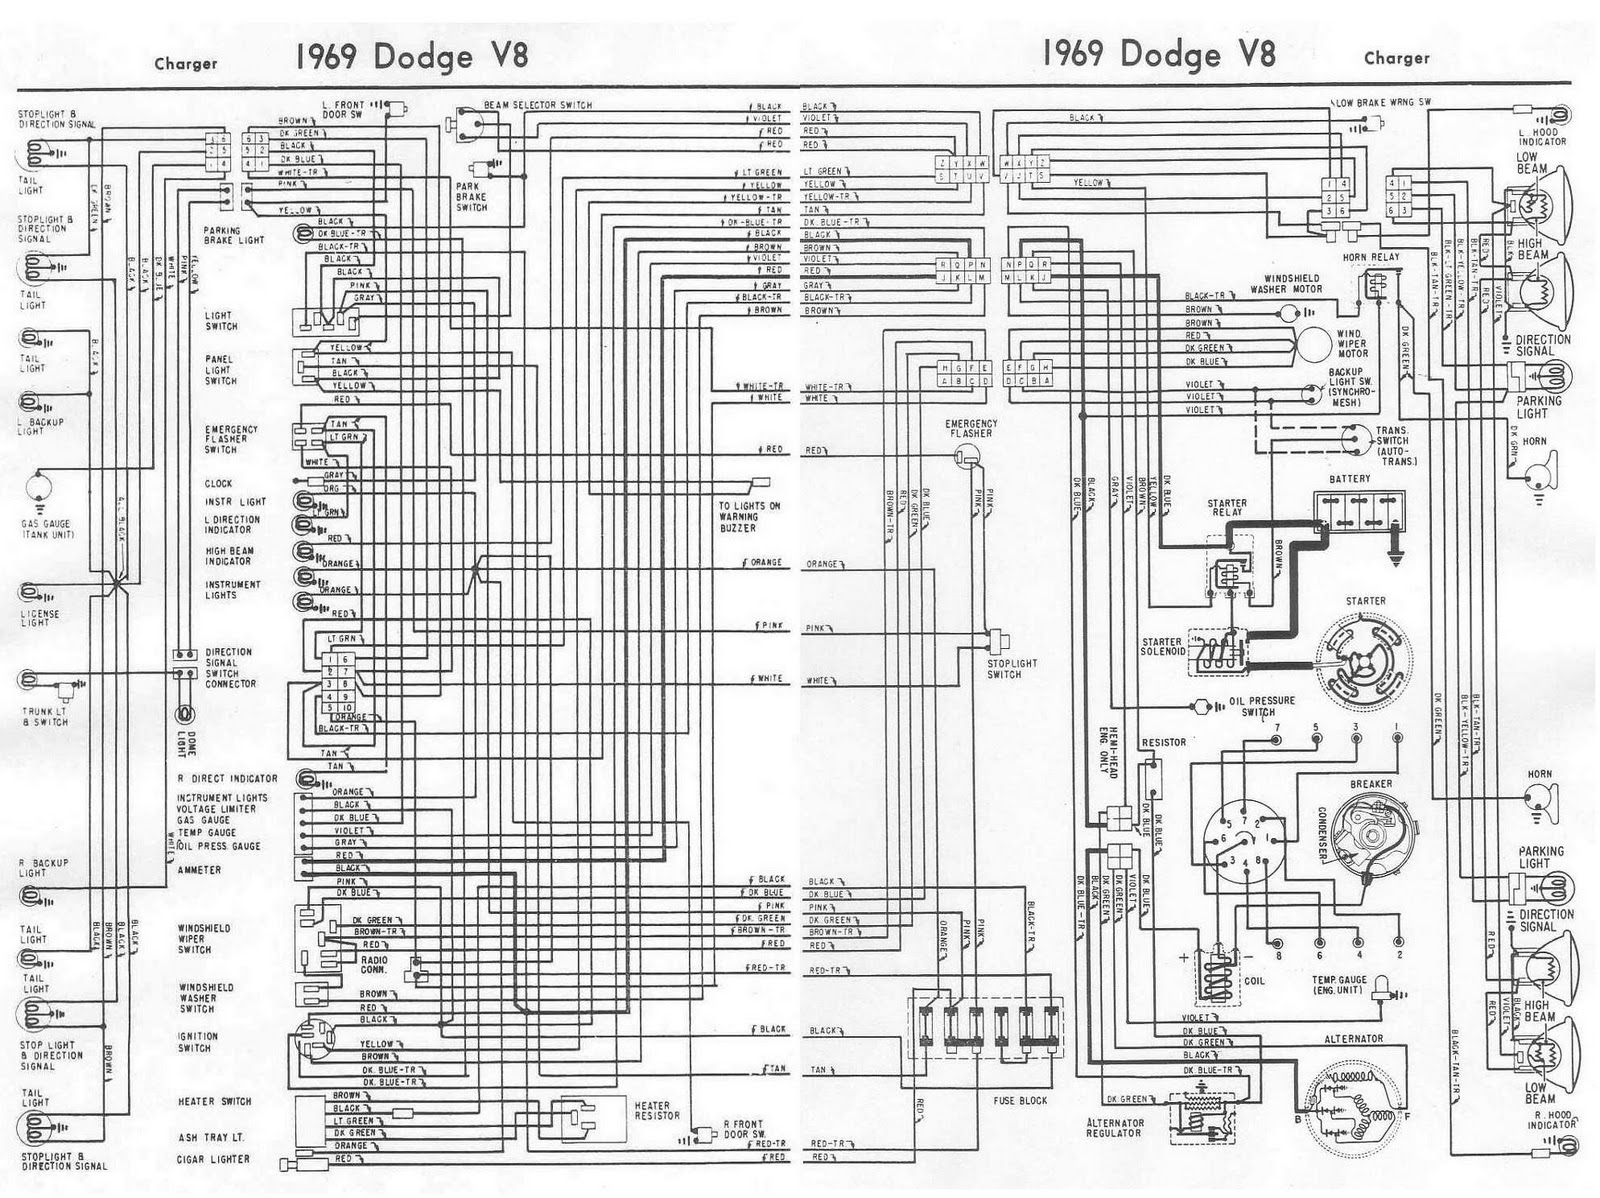 Diagram 1958 Dodge Wiring Diagram Full Version Hd Quality Wiring Diagram Jfi0teipisuck Jftechnology It